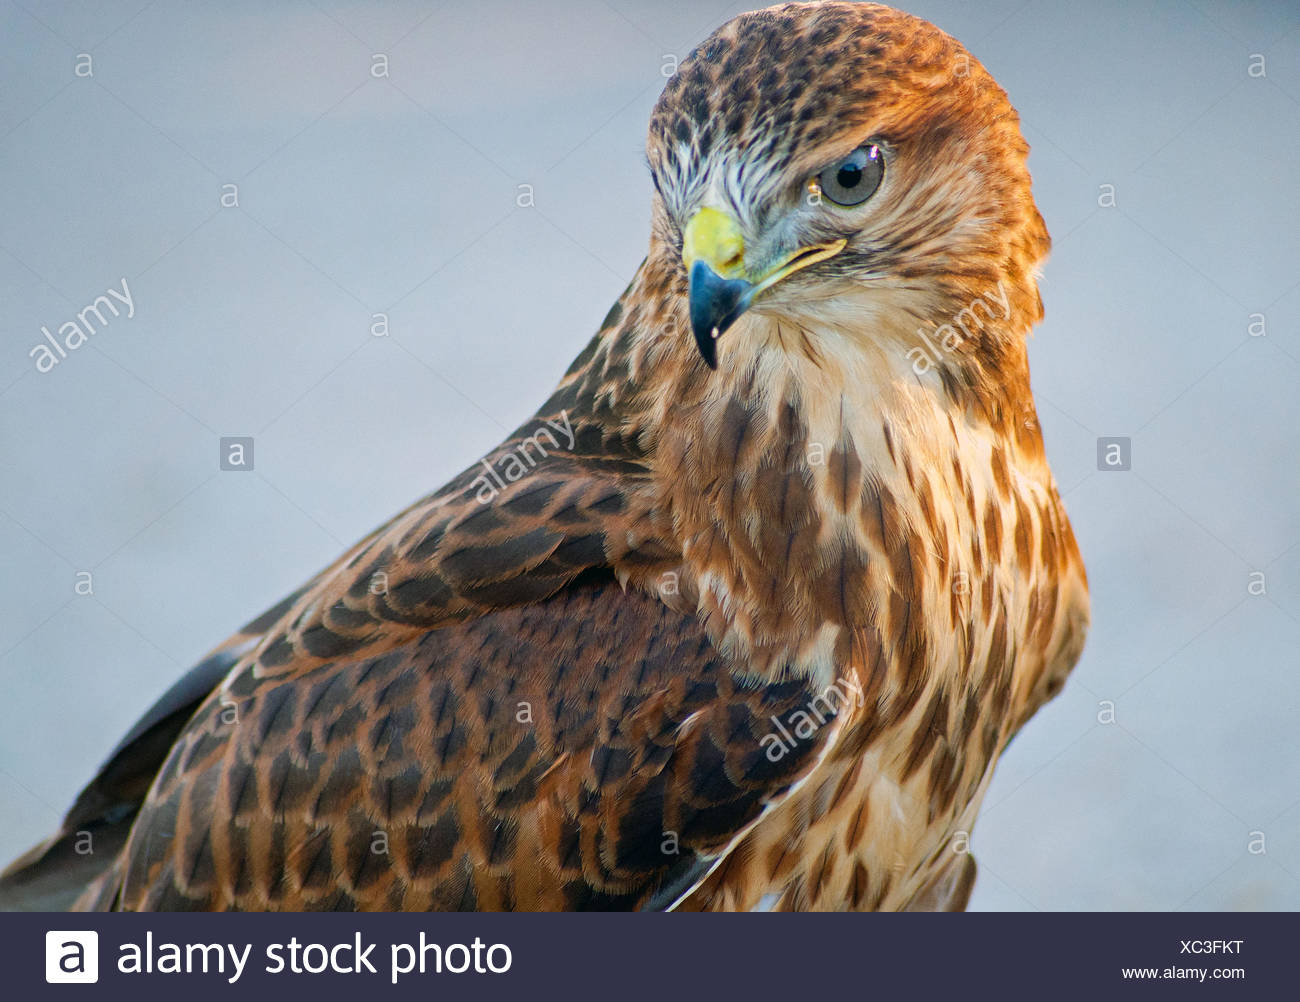 buzzard stock photos buzzard stock images alamy